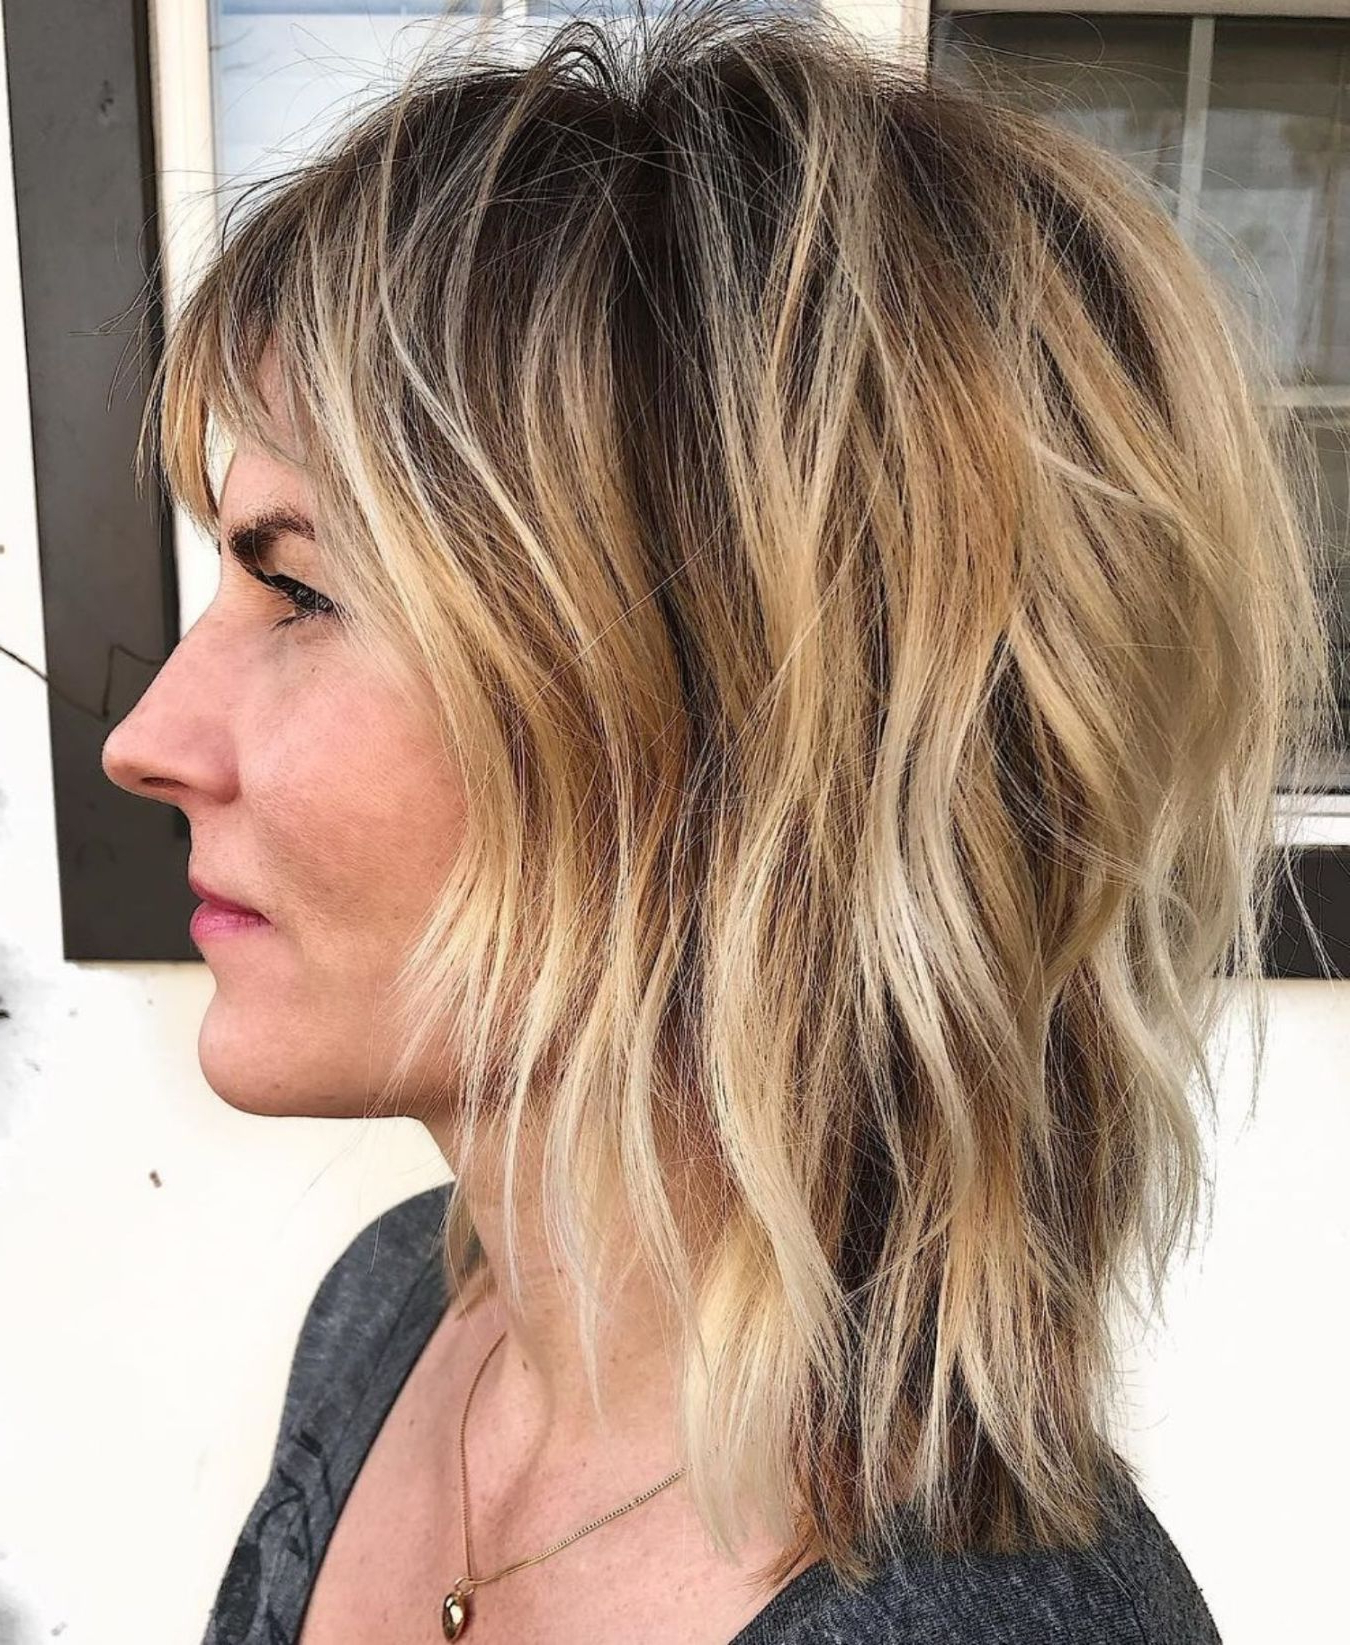 Hair In 2018 Feathered Pixie Shag Haircuts With Highlights (View 3 of 20)